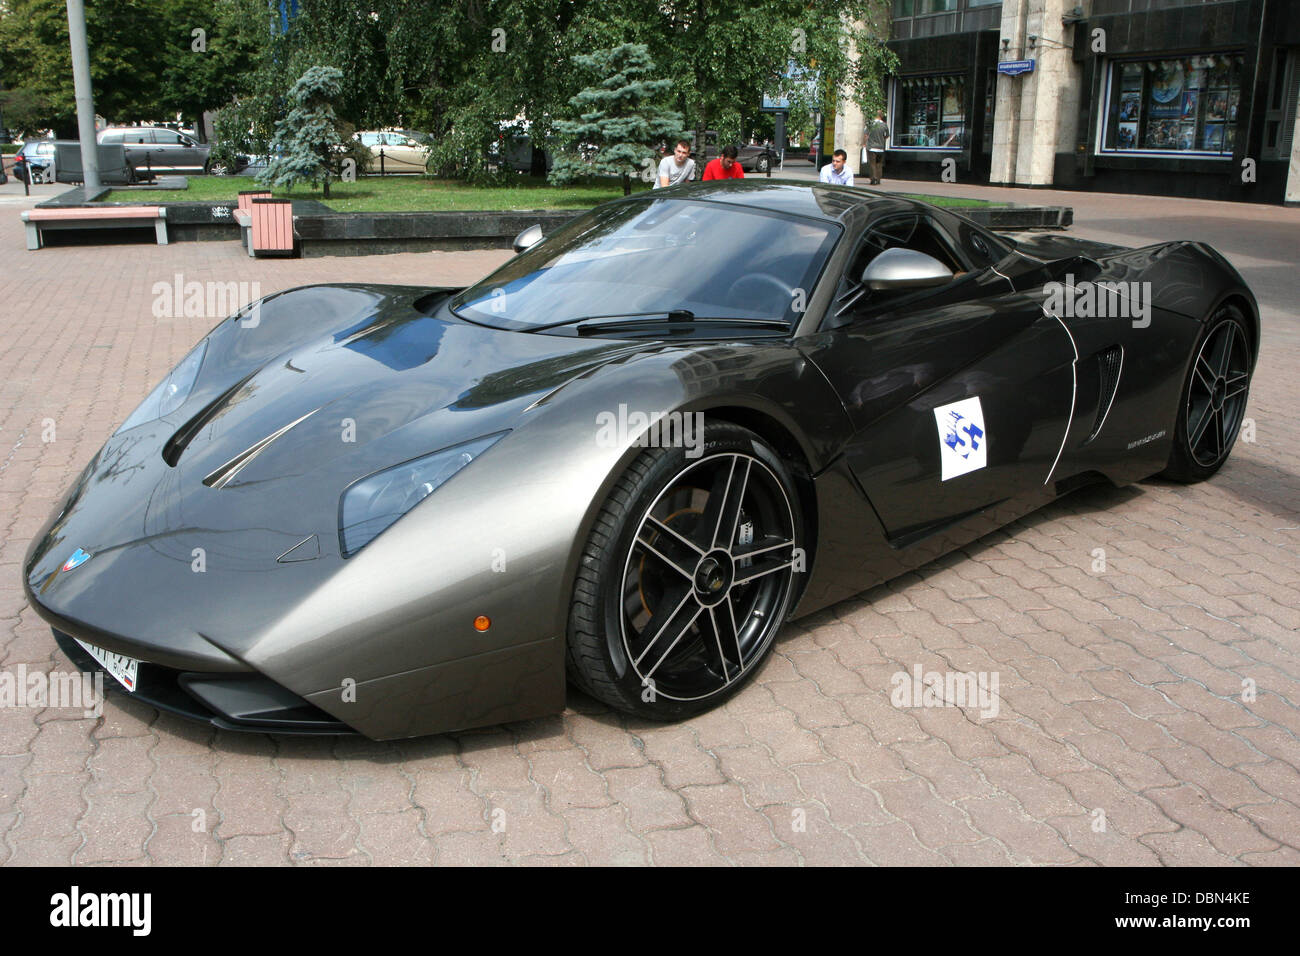 The first cars in Russia 18